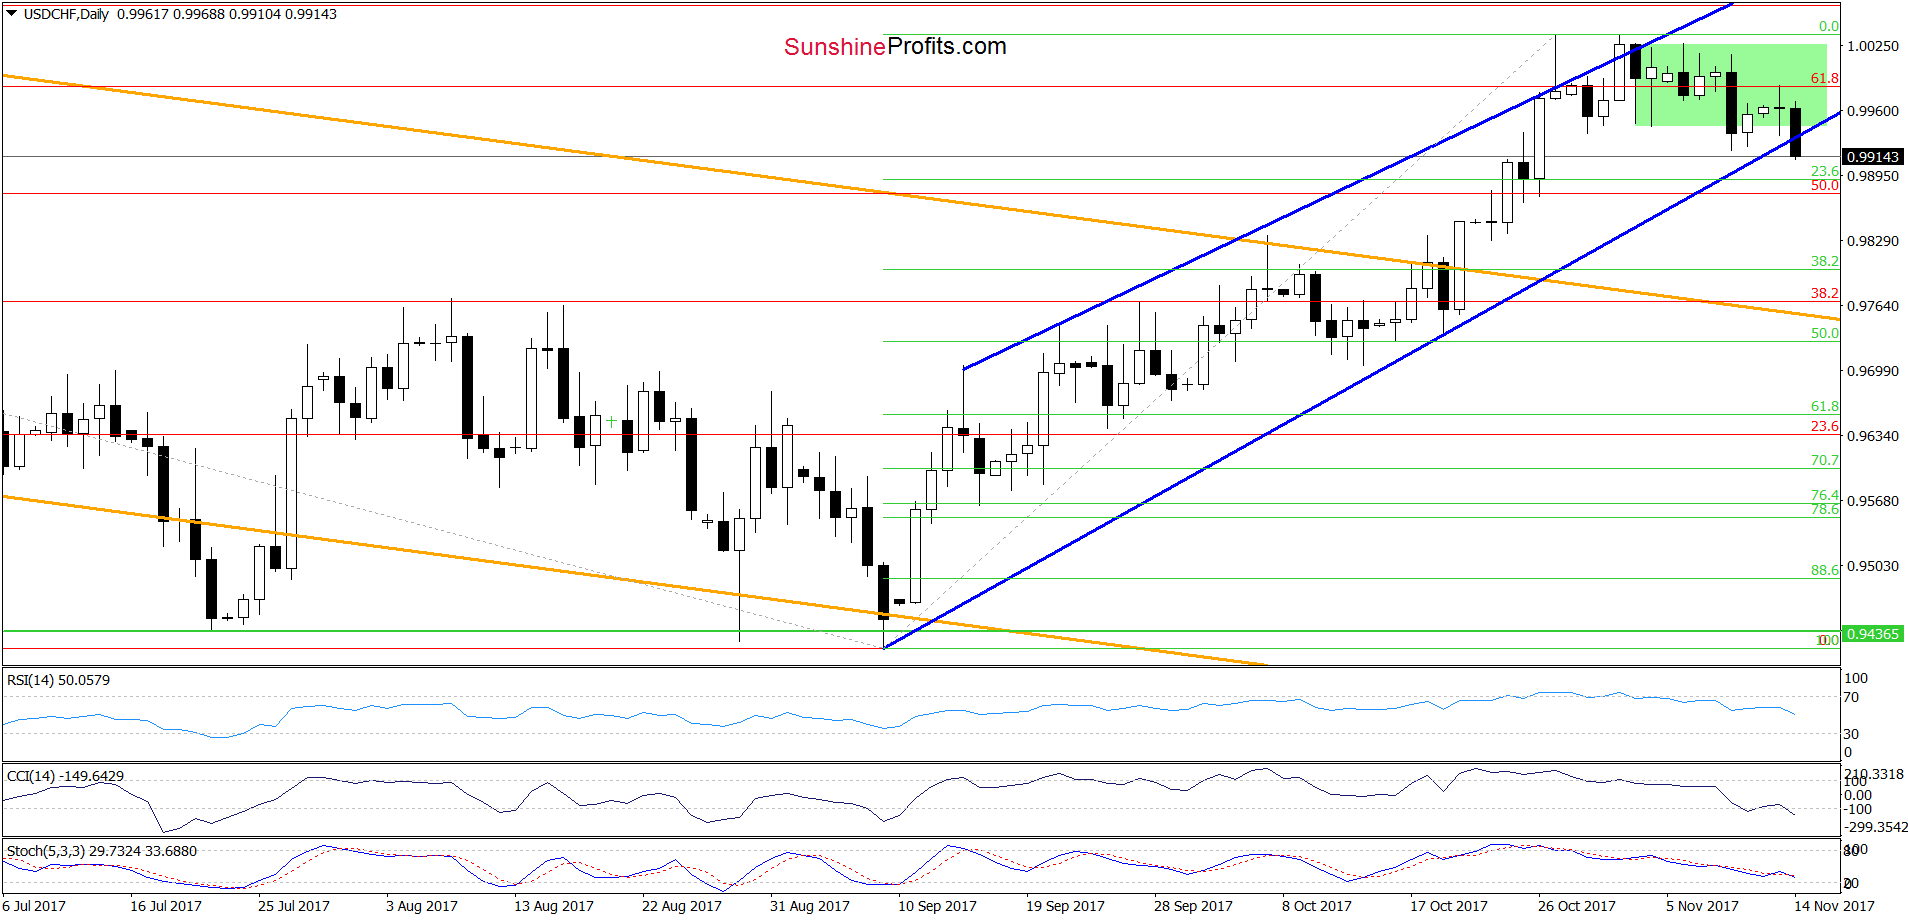 USD/CHF - the daily chart